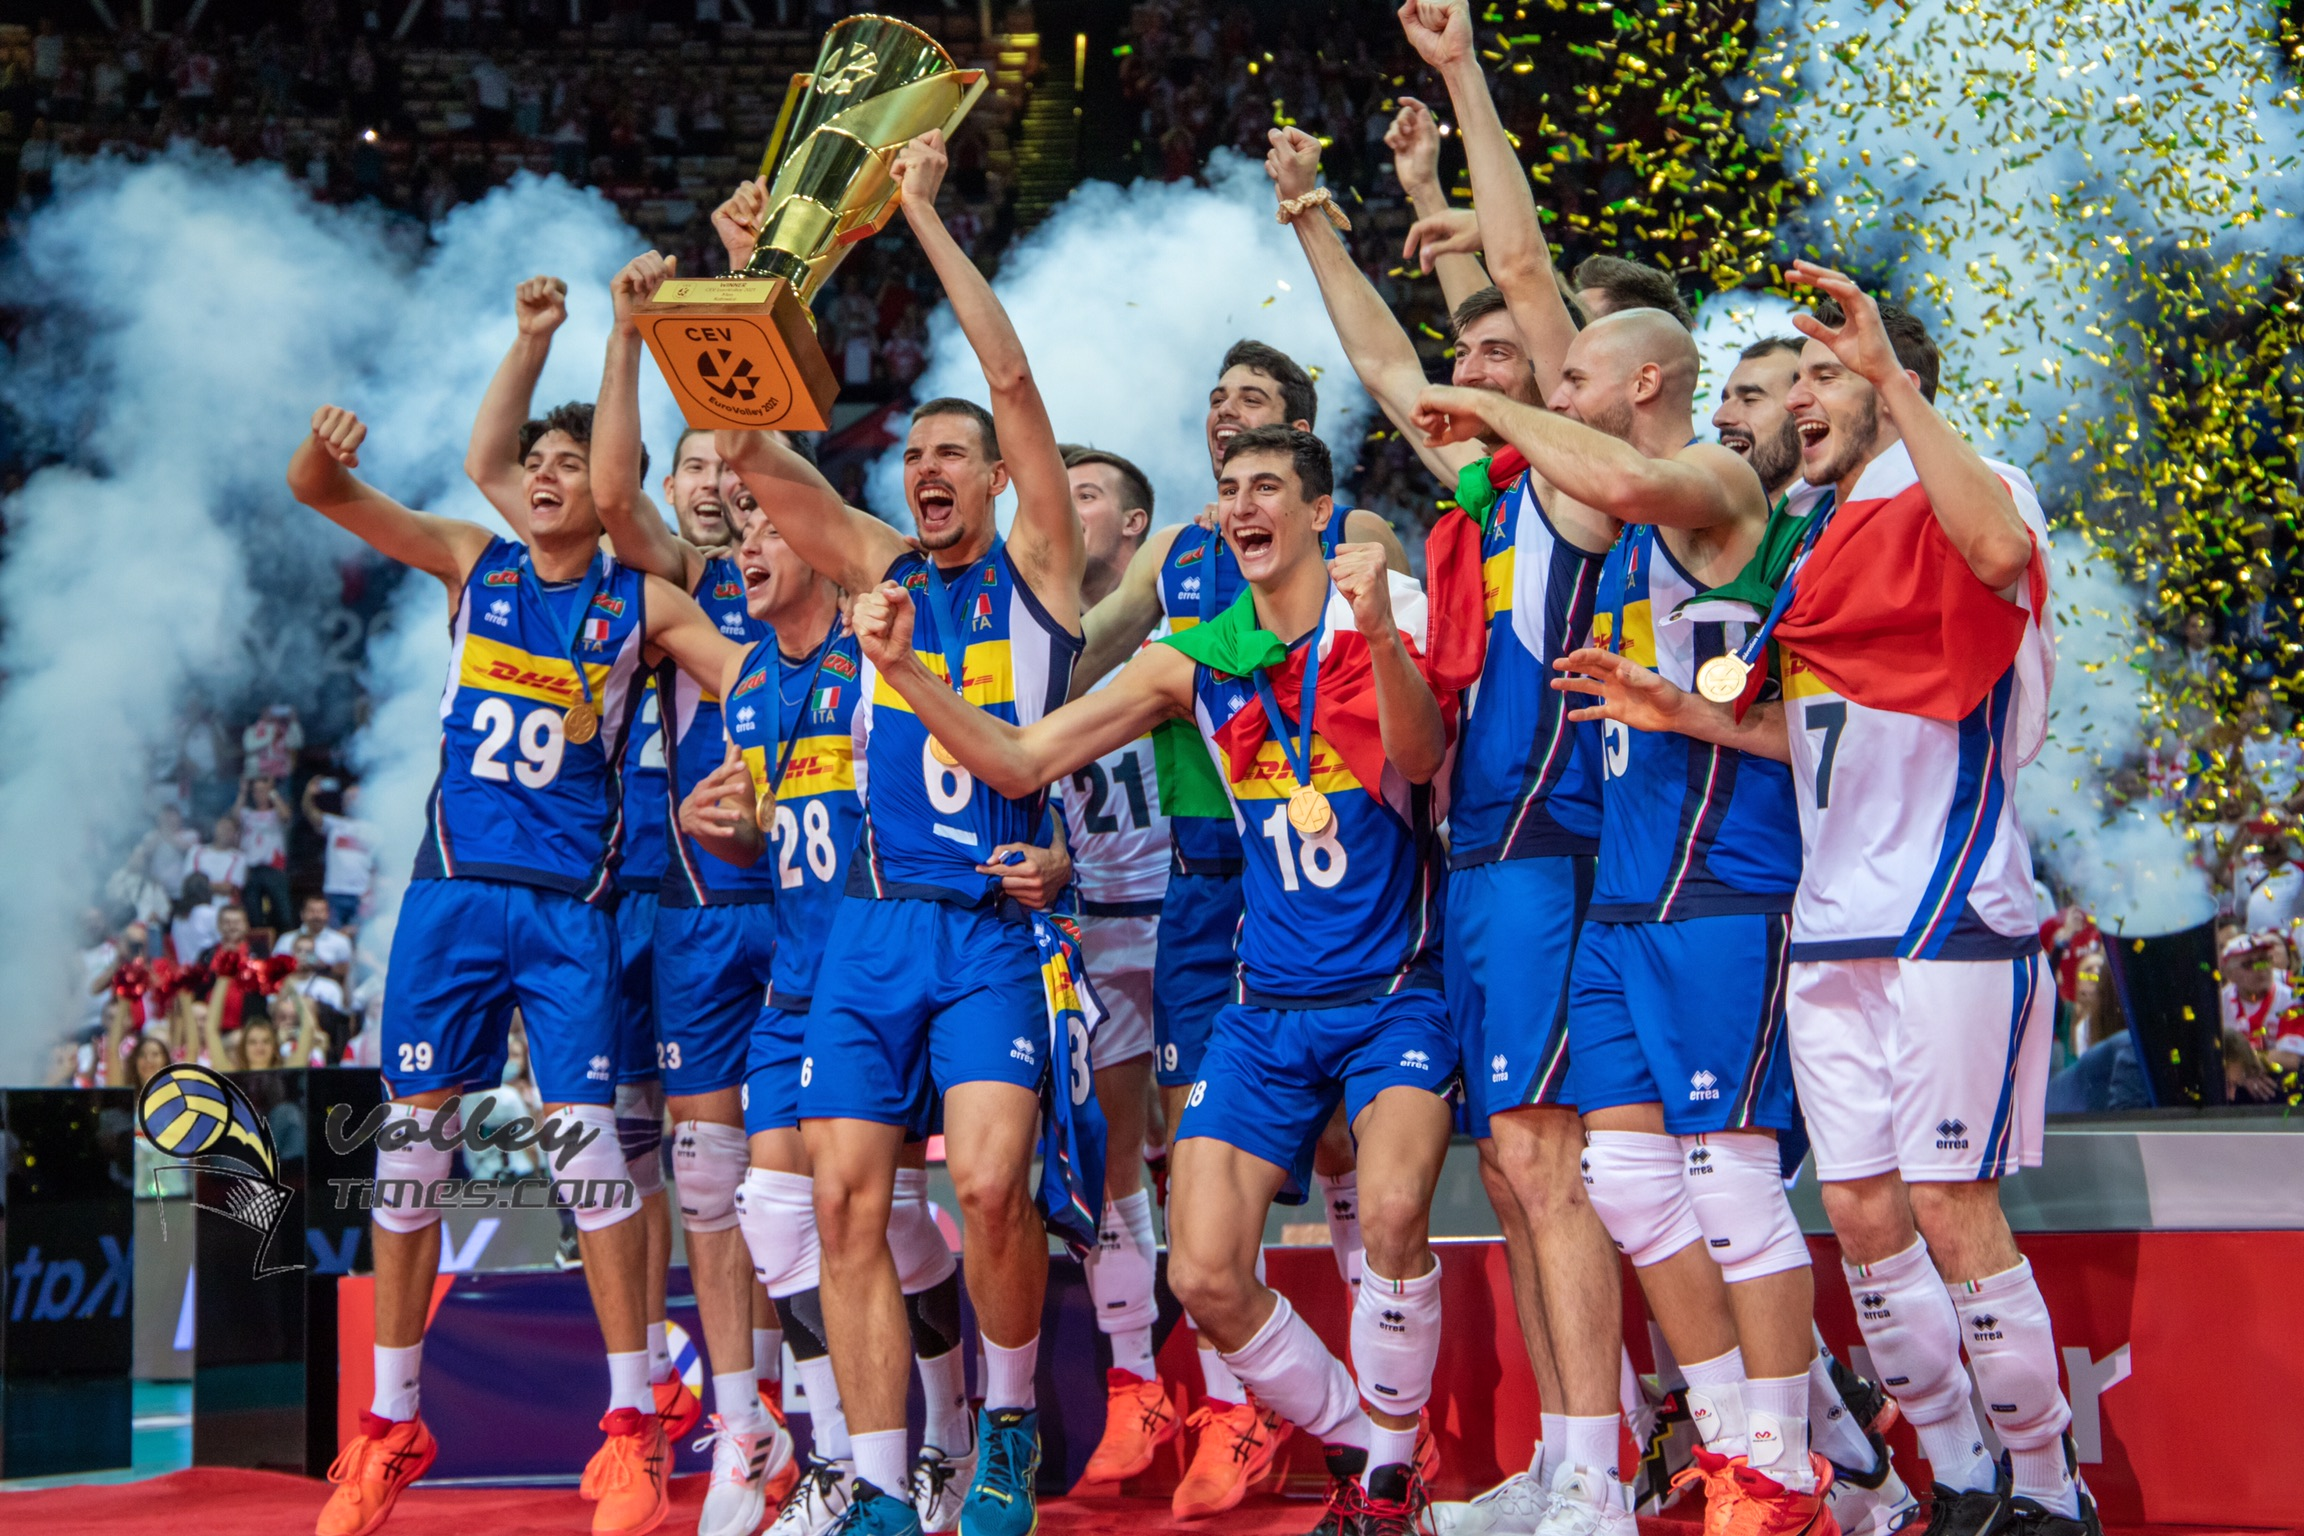 Eurovolley 2021: Magic of young Italy continues – on top of Europe again after 16 years!